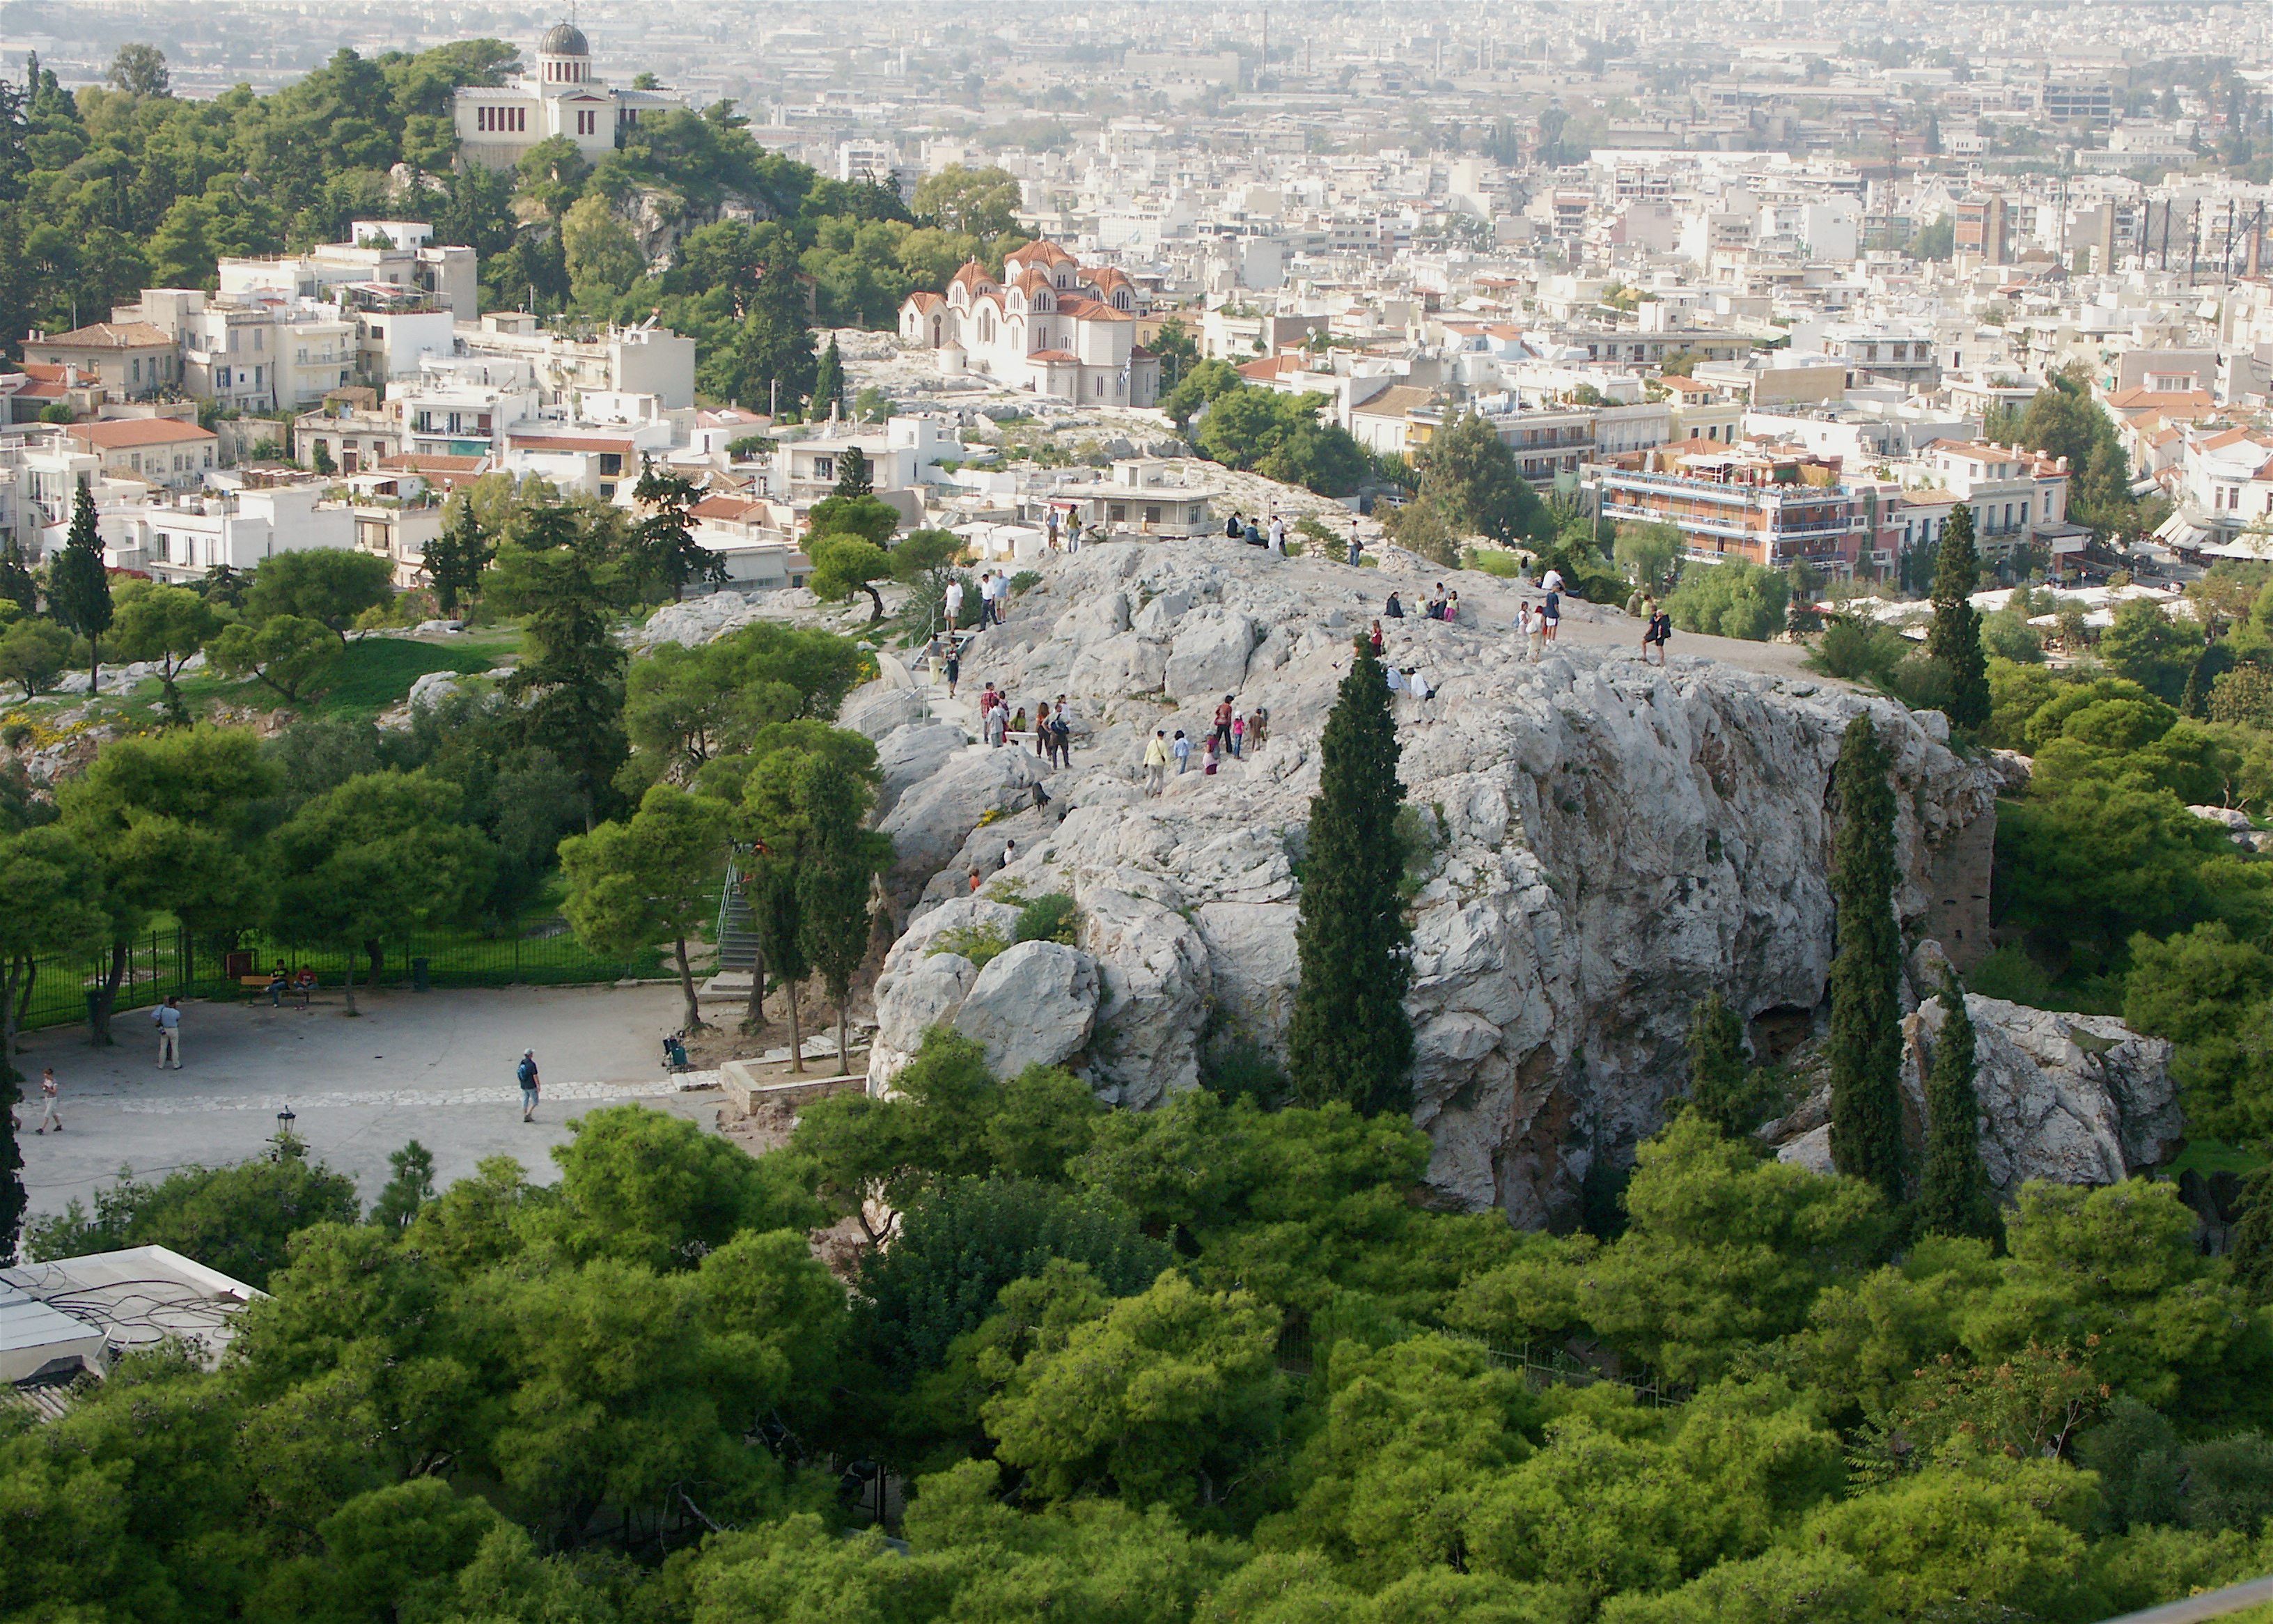 Areopagus Hill offers a stunning view of the Athens city. Photo courtesy: Wikimedia